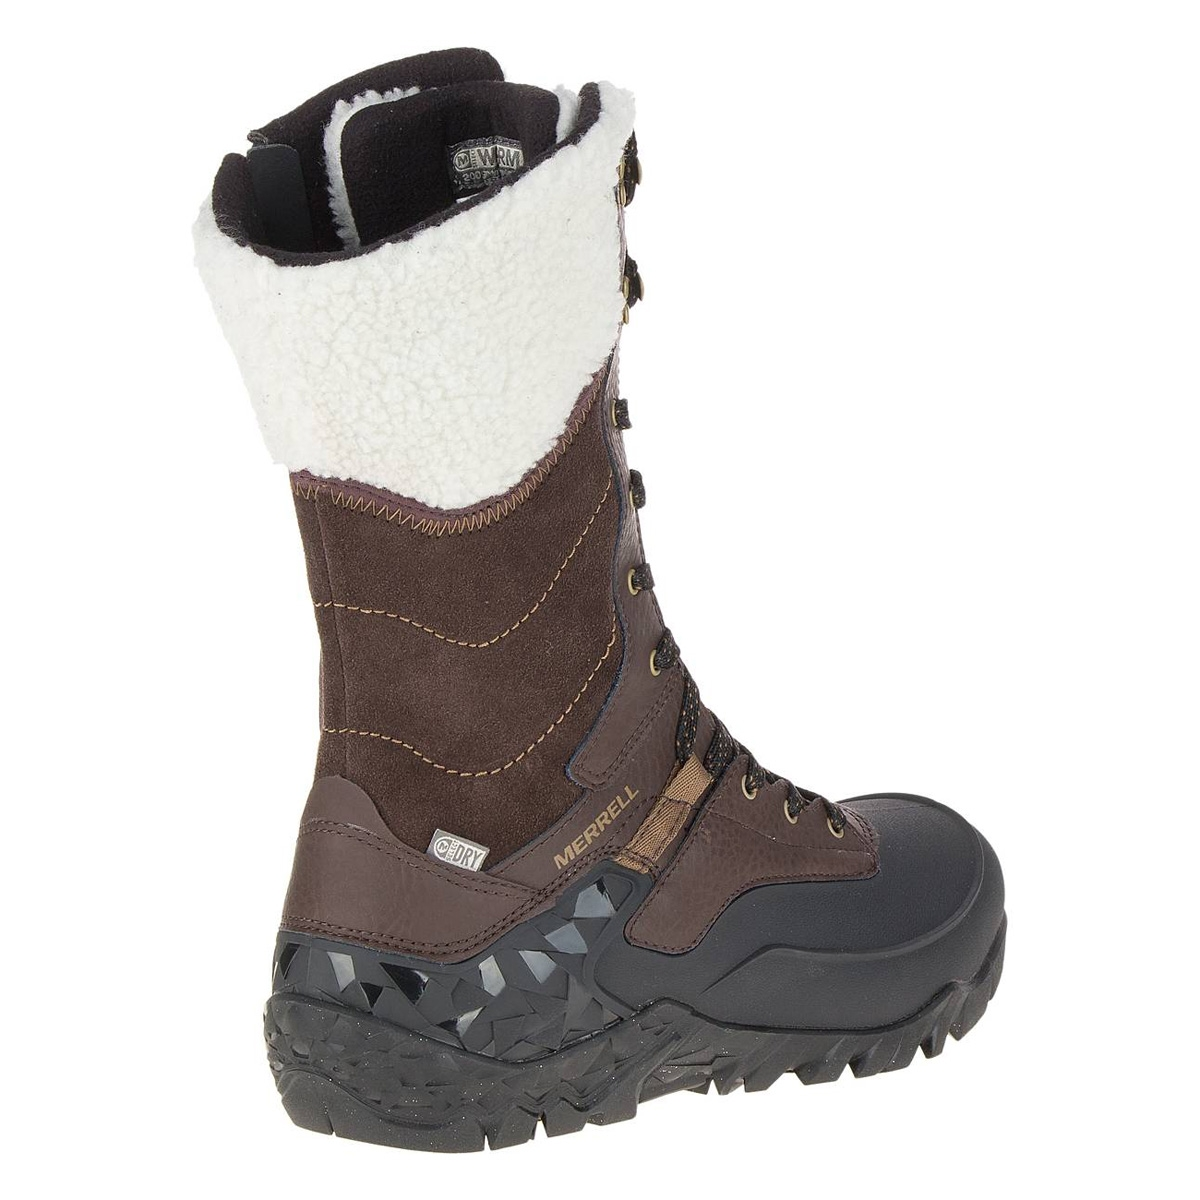 Tall Hiking Boots Womens : Awesome Red Tall Hiking Boots ...